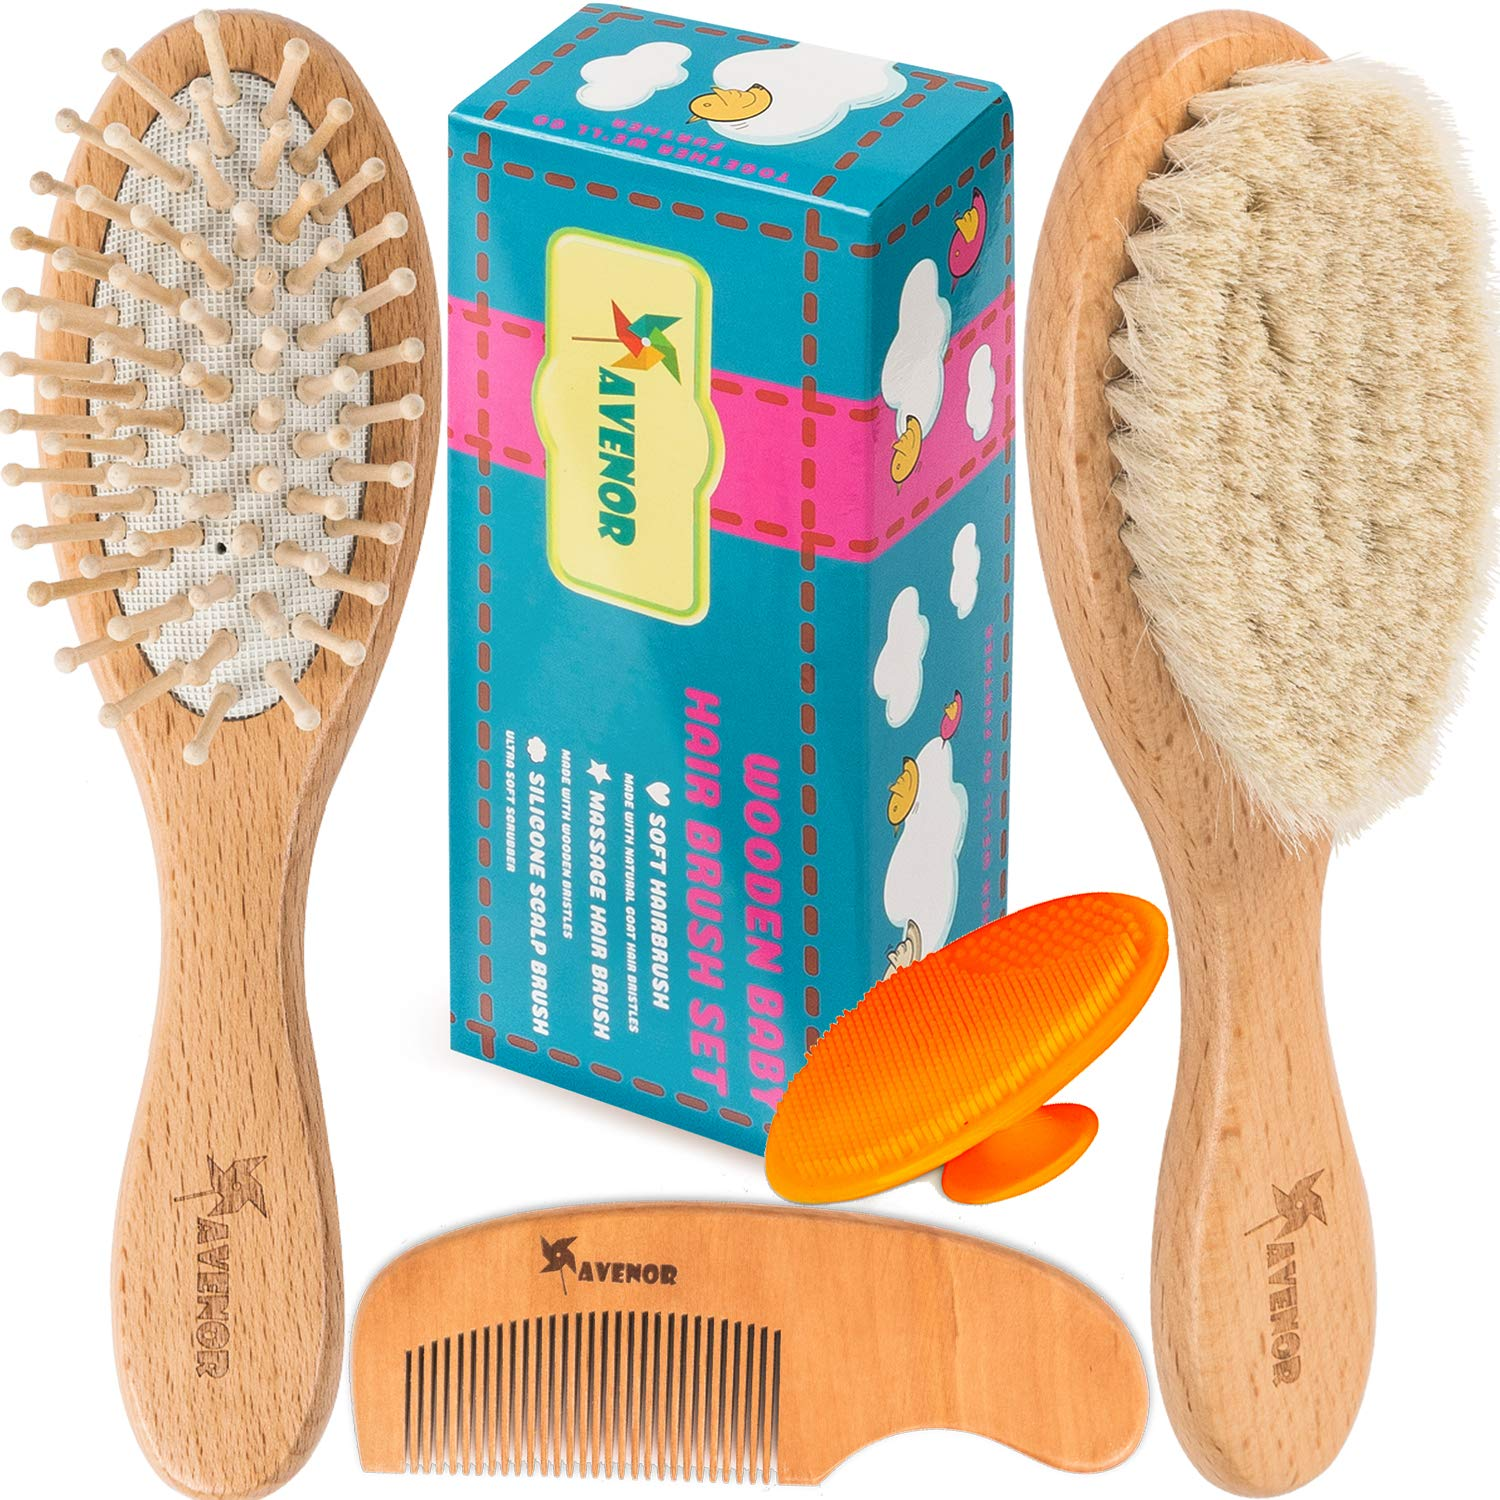 Baby Hair Brush Comb Set - Natural Wooden Hairbrush with Soft Goat Bristles for Cradle Cap - Scalp Grooming Massage for Newborns, Toddlers, Kids - Baby Shower and Registry Gift by Avenor